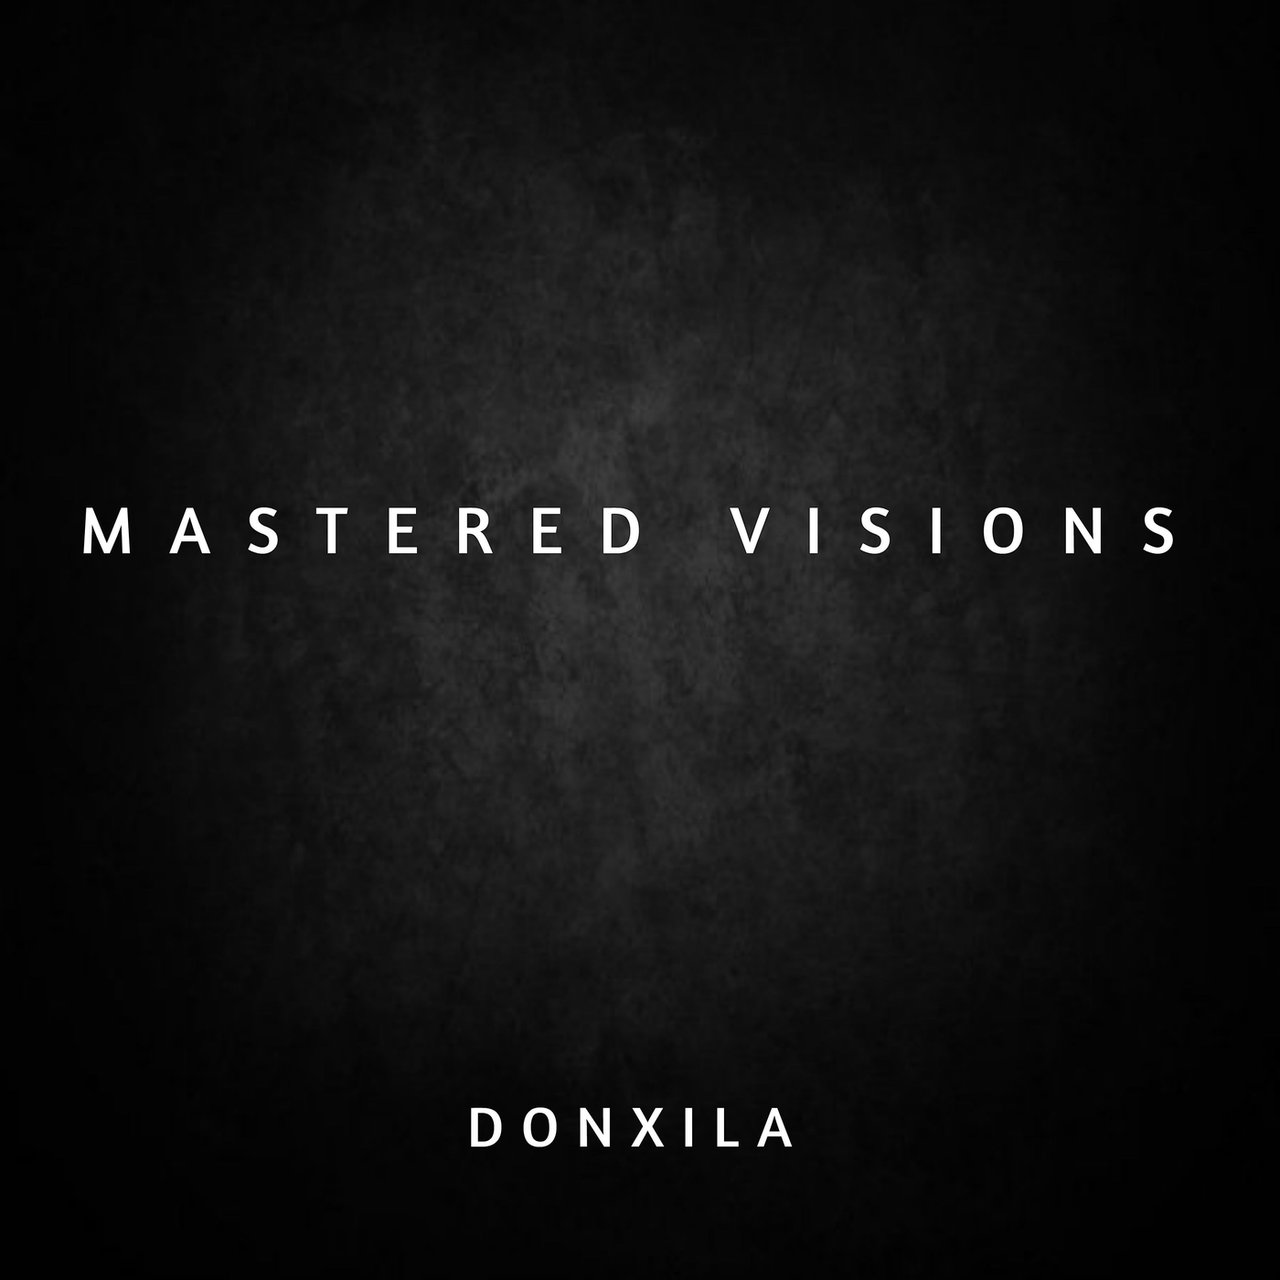 Mastered Visions